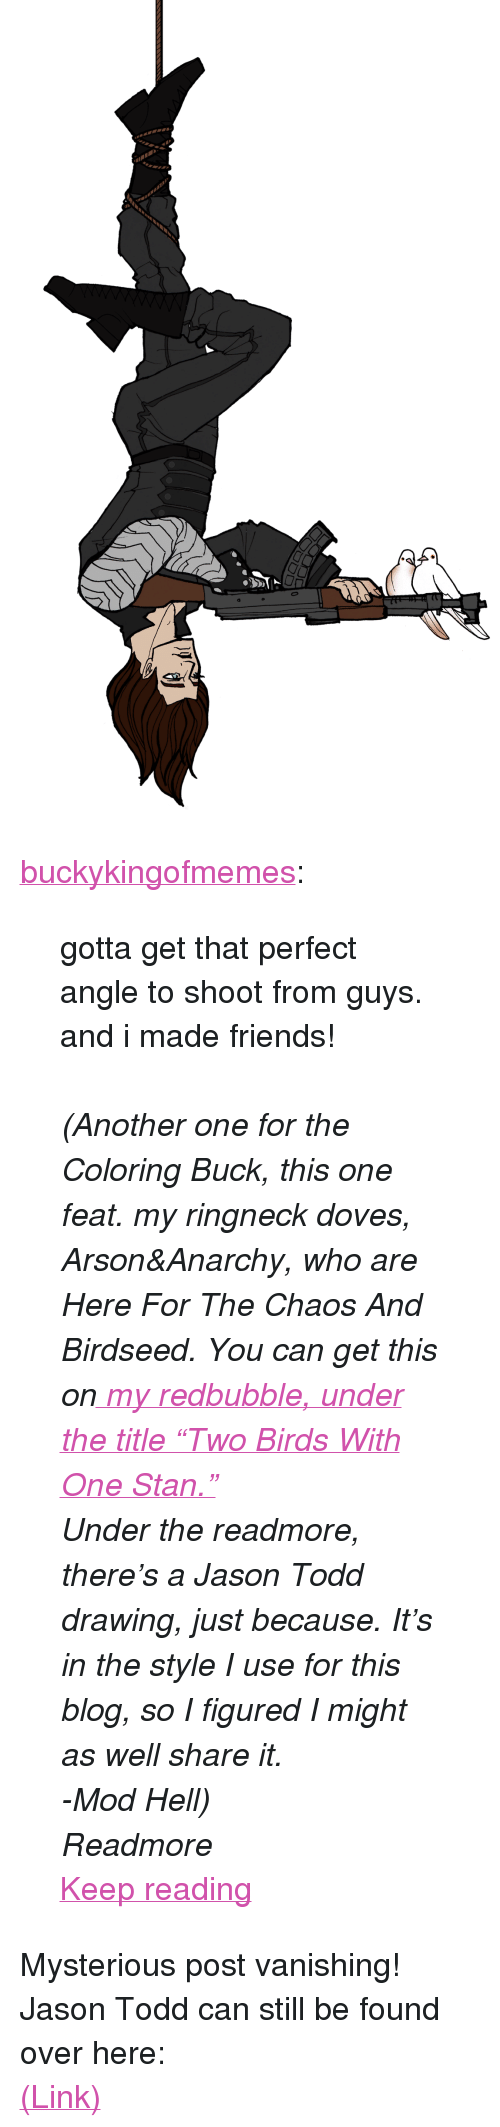 """doves: <p><a href=""""http://buckykingofmemes.tumblr.com/post/164429939636/gotta-get-that-perfect-angle-to-shoot-from-guys"""" class=""""tumblr_blog"""">buckykingofmemes</a>:</p> <blockquote> <p>gotta get that perfect angle to shoot from guys. and i made friends!</p> <p><br/></p> <p><i>(Another one for the Coloring Buck, this one feat. my ringneck doves, Arson&amp;Anarchy, who are Here For The Chaos And Birdseed. You can get this on<a href=""""https://www.redbubble.com/people/buckykingofmeme?asc=u""""> my redbubble, under the title""""Two Birds With One Stan.""""</a></i></p> <p><i>Under the readmore, there's a Jason Todd drawing, just because. It's in the style I use for this blog, so I figured I might as well share it.</i></p> <p><i>-Mod Hell)</i></p> <p><i>Readmore</i></p> <p><a href=""""http://buckykingofmemes.tumblr.com/post/164429939636/gotta-get-that-perfect-angle-to-shoot-from-guys"""" class=""""tmblr-truncated-link read_more"""">Keep reading</a></p> </blockquote> <p>Mysterious post vanishing! Jason Todd can still be found over here:</p><p><a href=""""http://hellenhighwater.tumblr.com/post/164429454415/jason-todd-i-recently-ish-followed"""">(Link)</a></p>"""